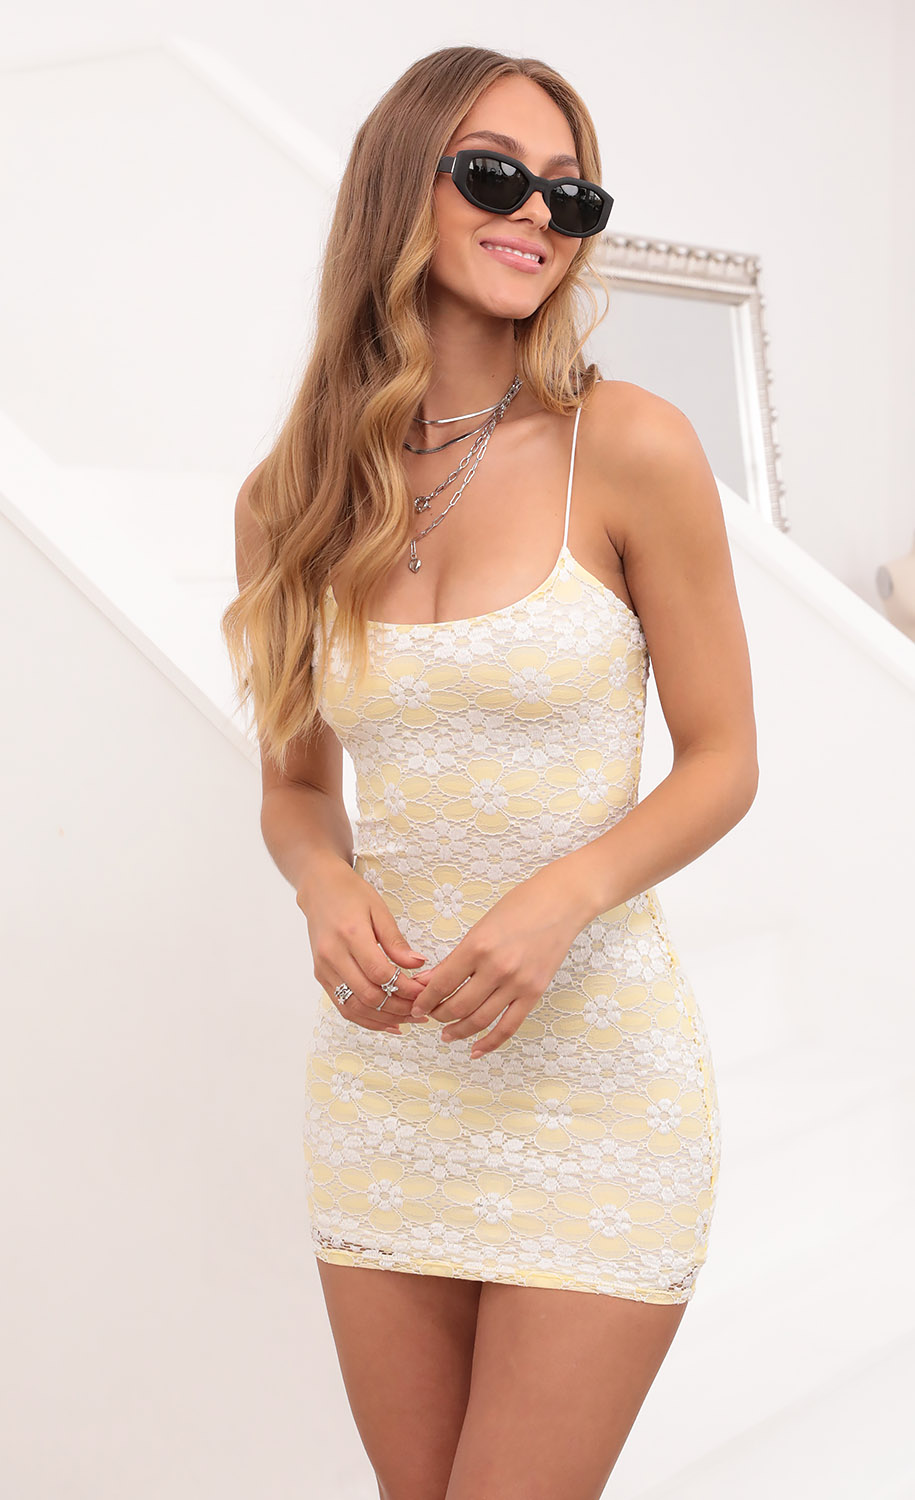 Glisten Bodycon Dress In White and Yellow Floral Lace